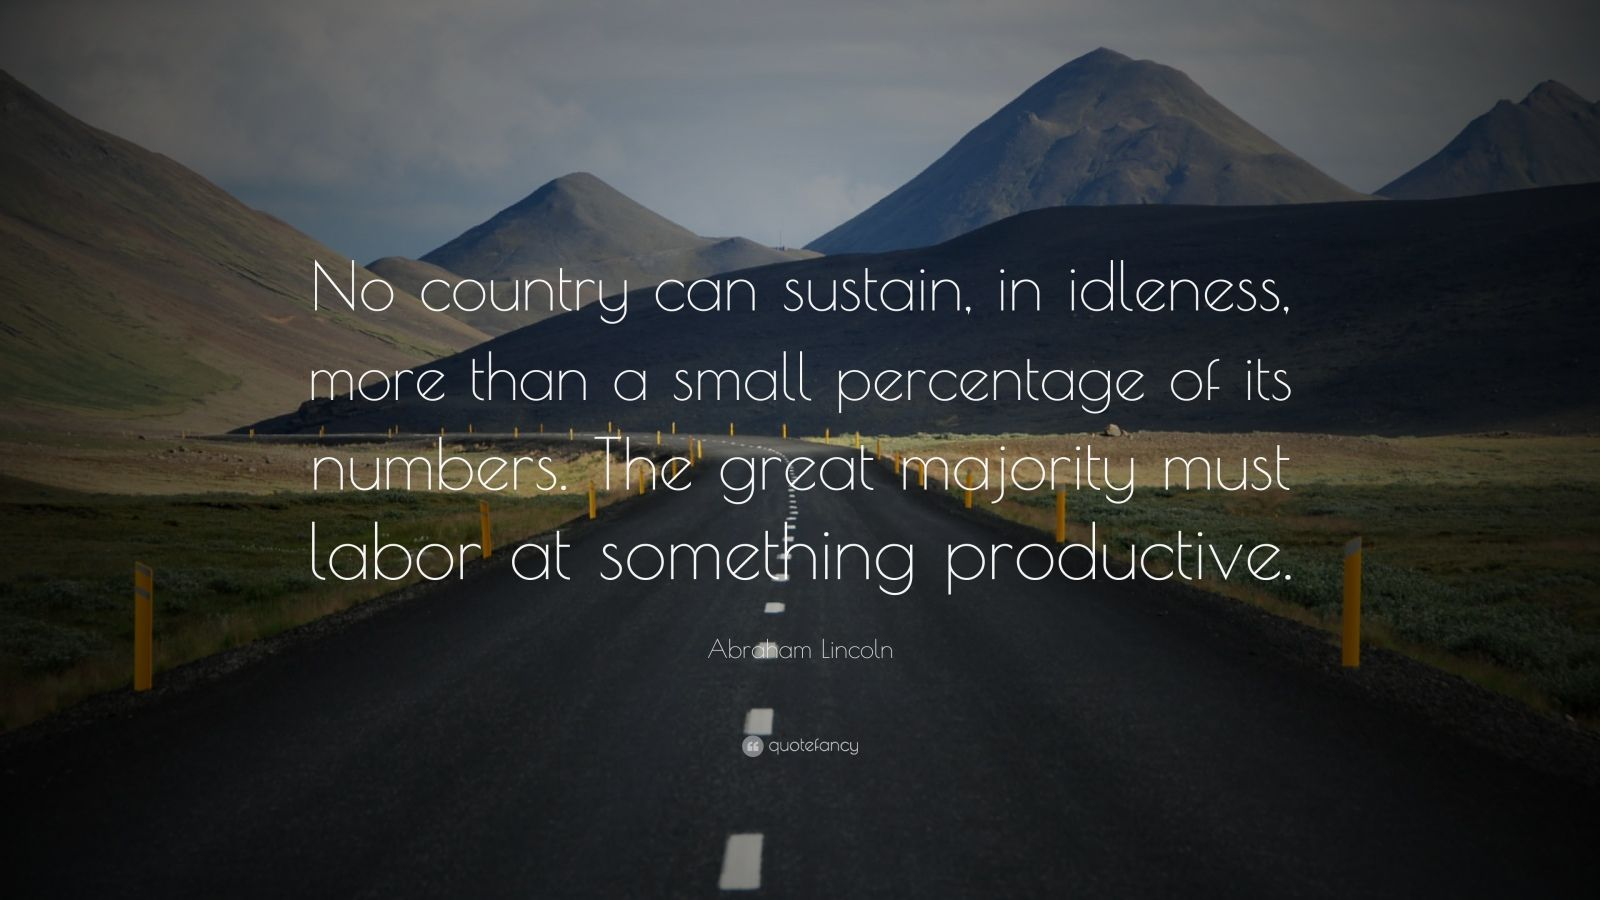 """Abraham Lincoln Quote: """"No country can sustain, in idleness, more than a small percentage of its numbers. The great majority must labor at something productive."""""""